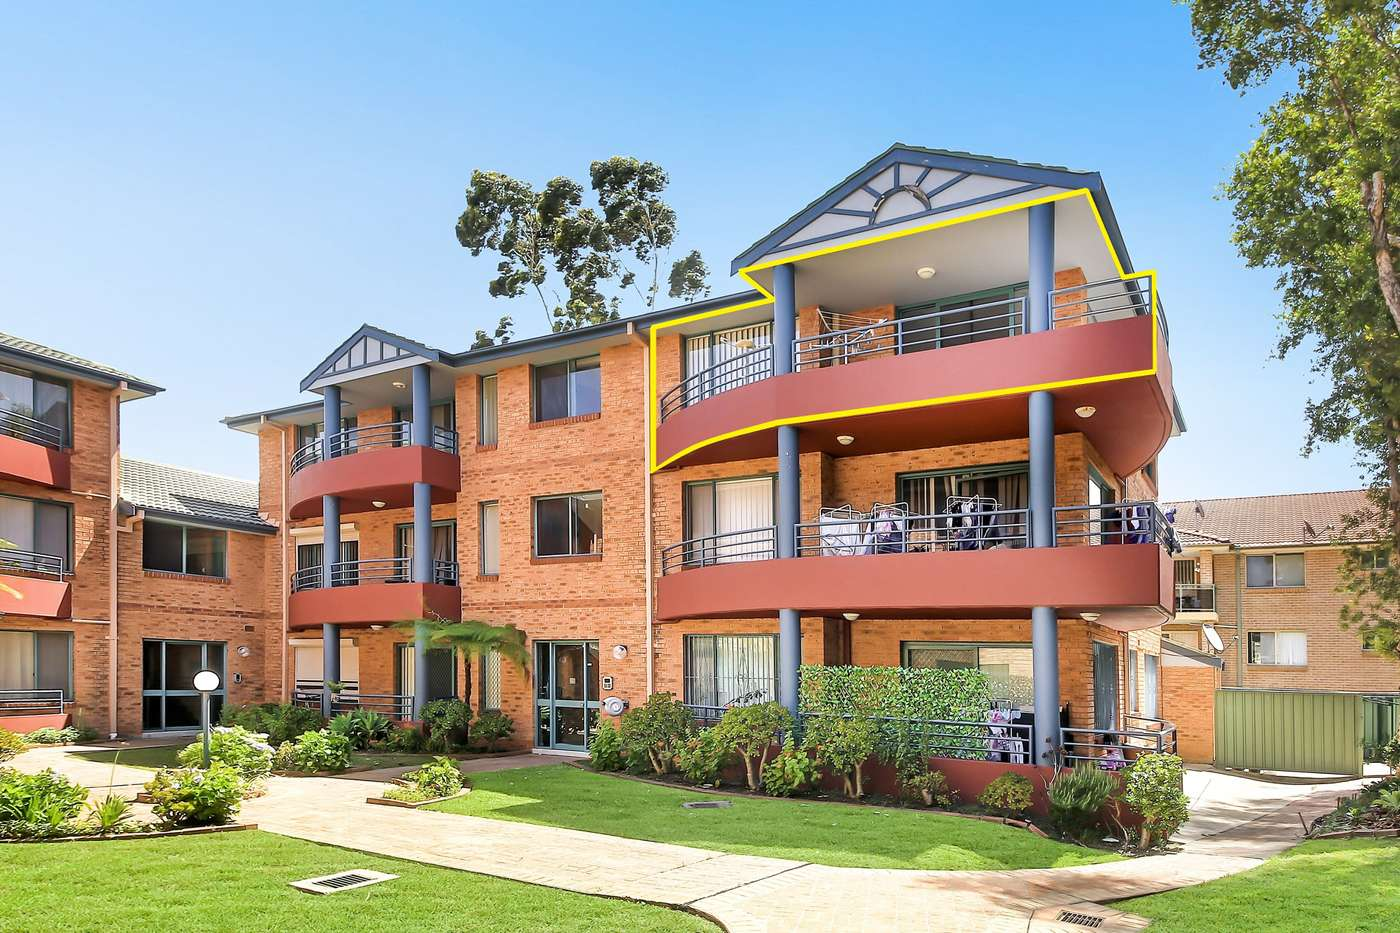 Main view of Homely unit listing, 20/94 Brancourt Avenue, Yagoona, NSW 2199